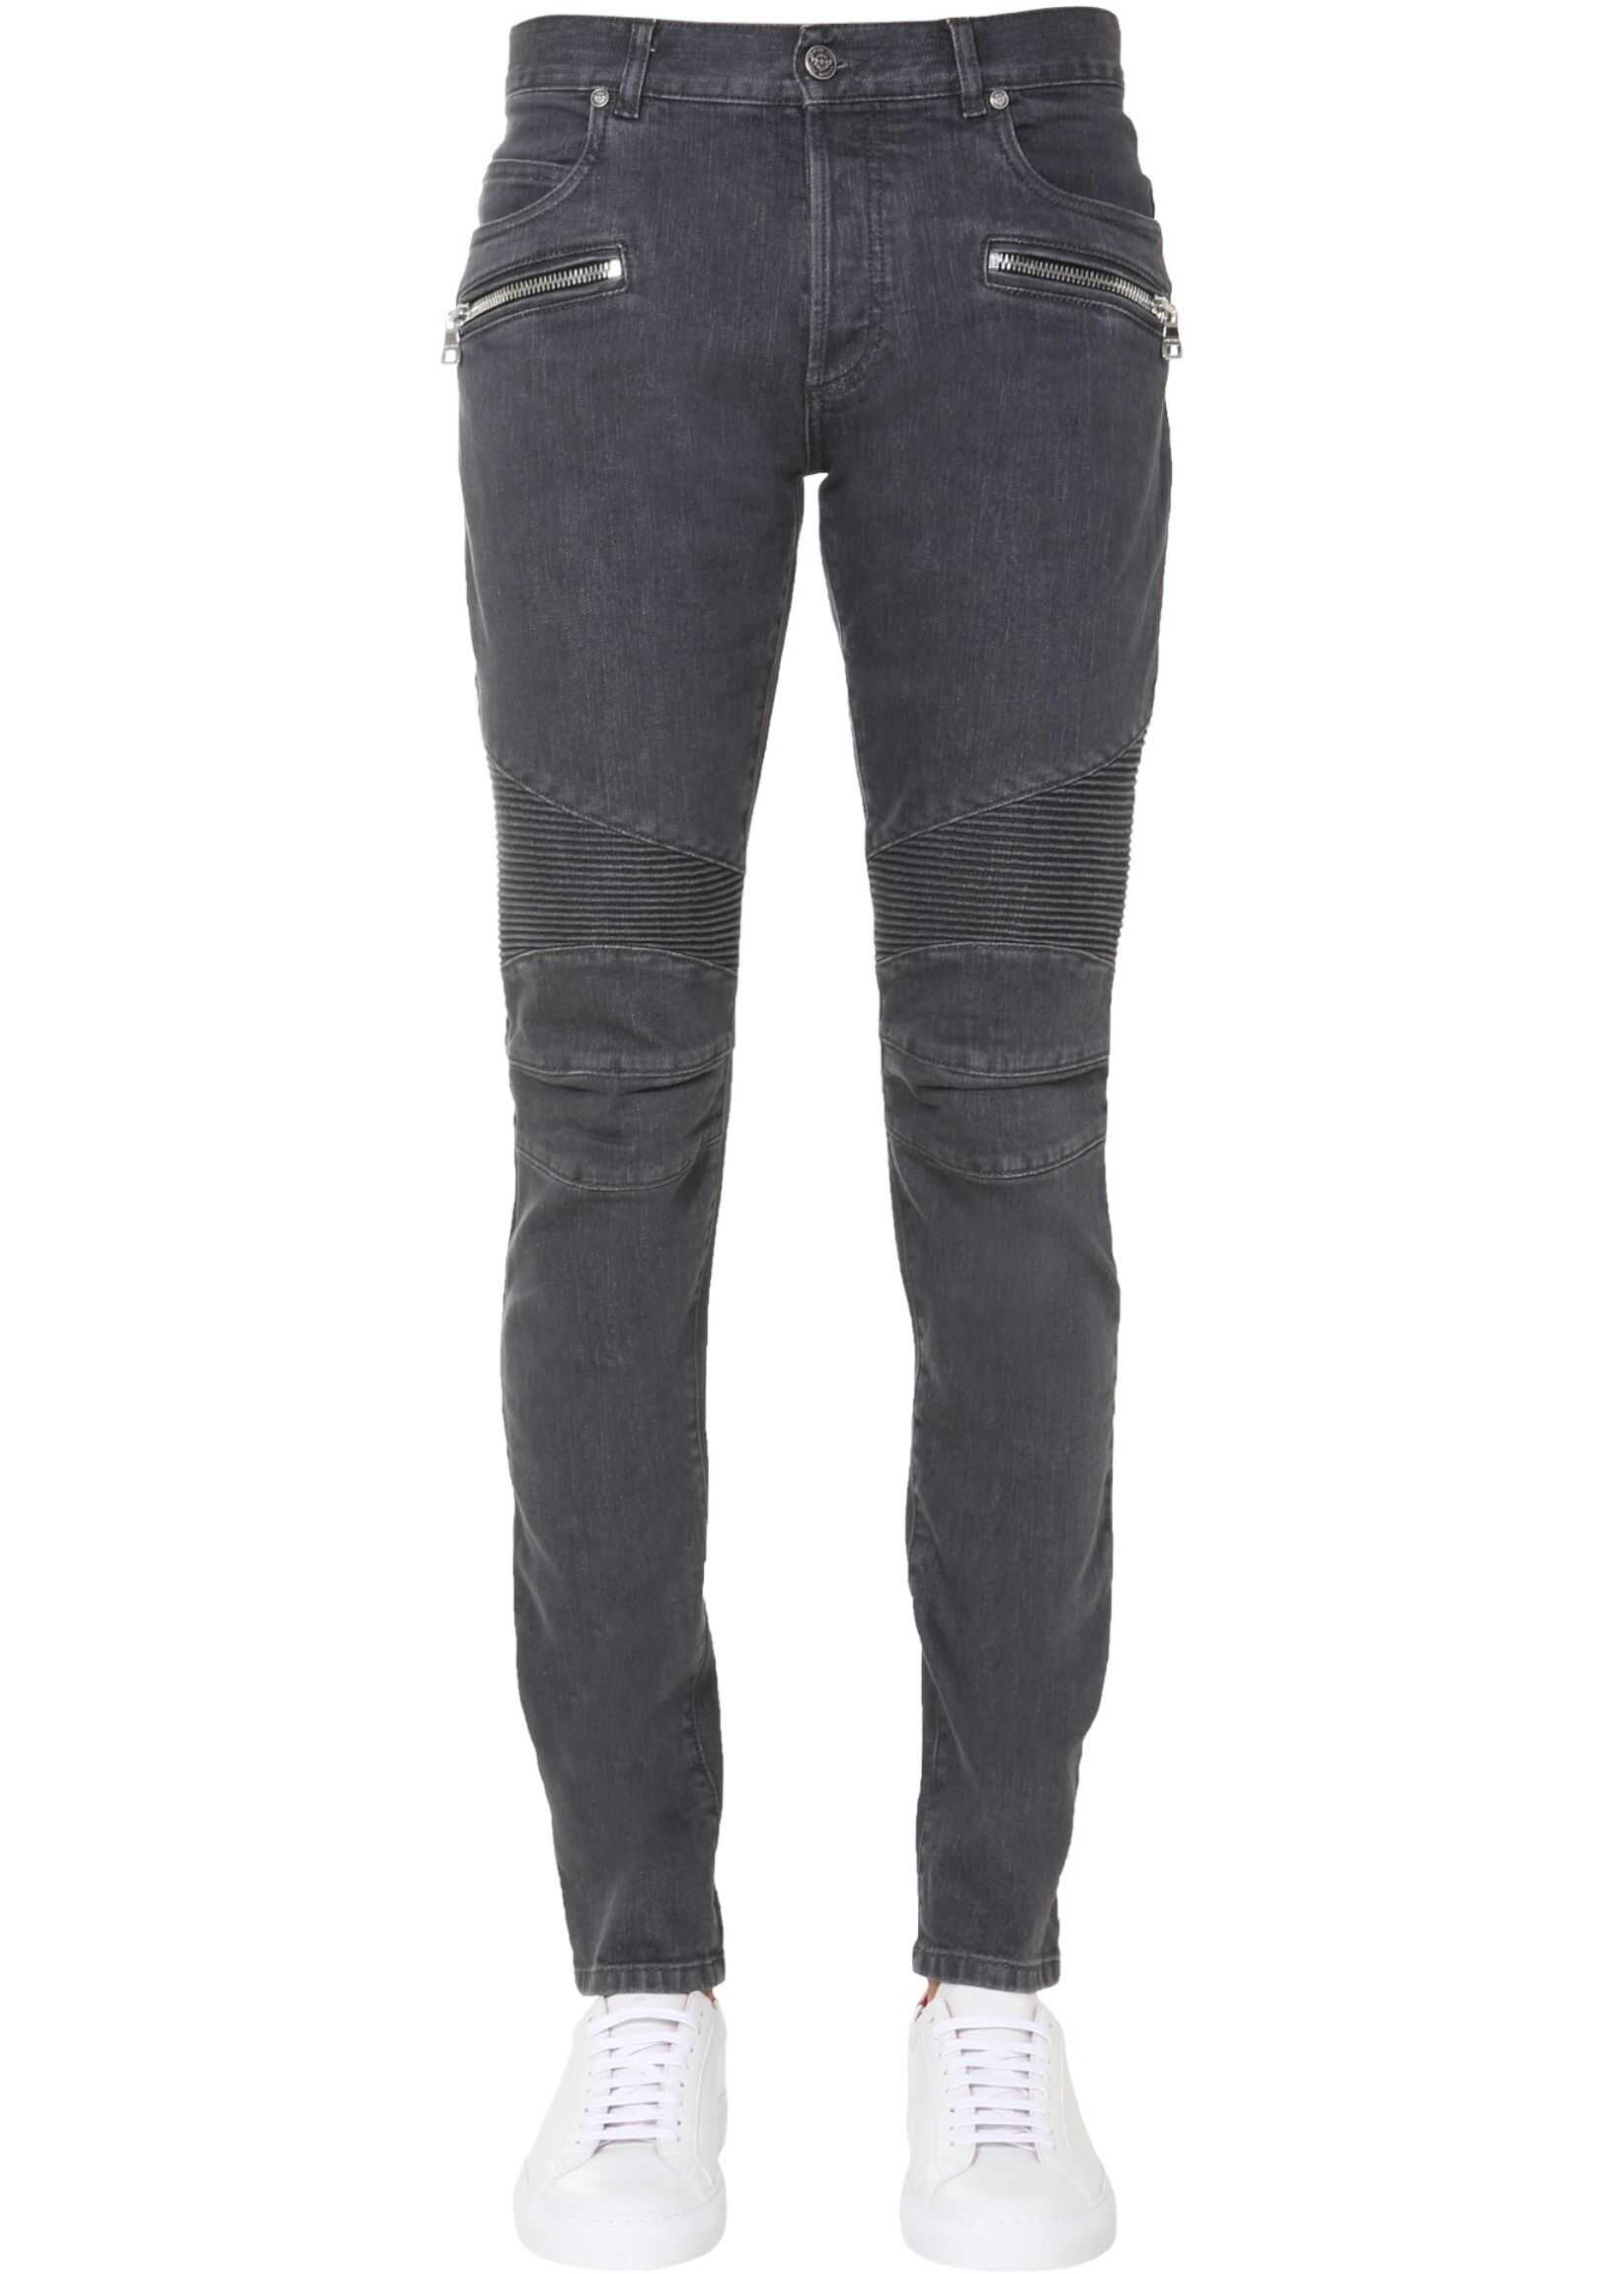 Balmain Slim Fit Jeans GREY imagine